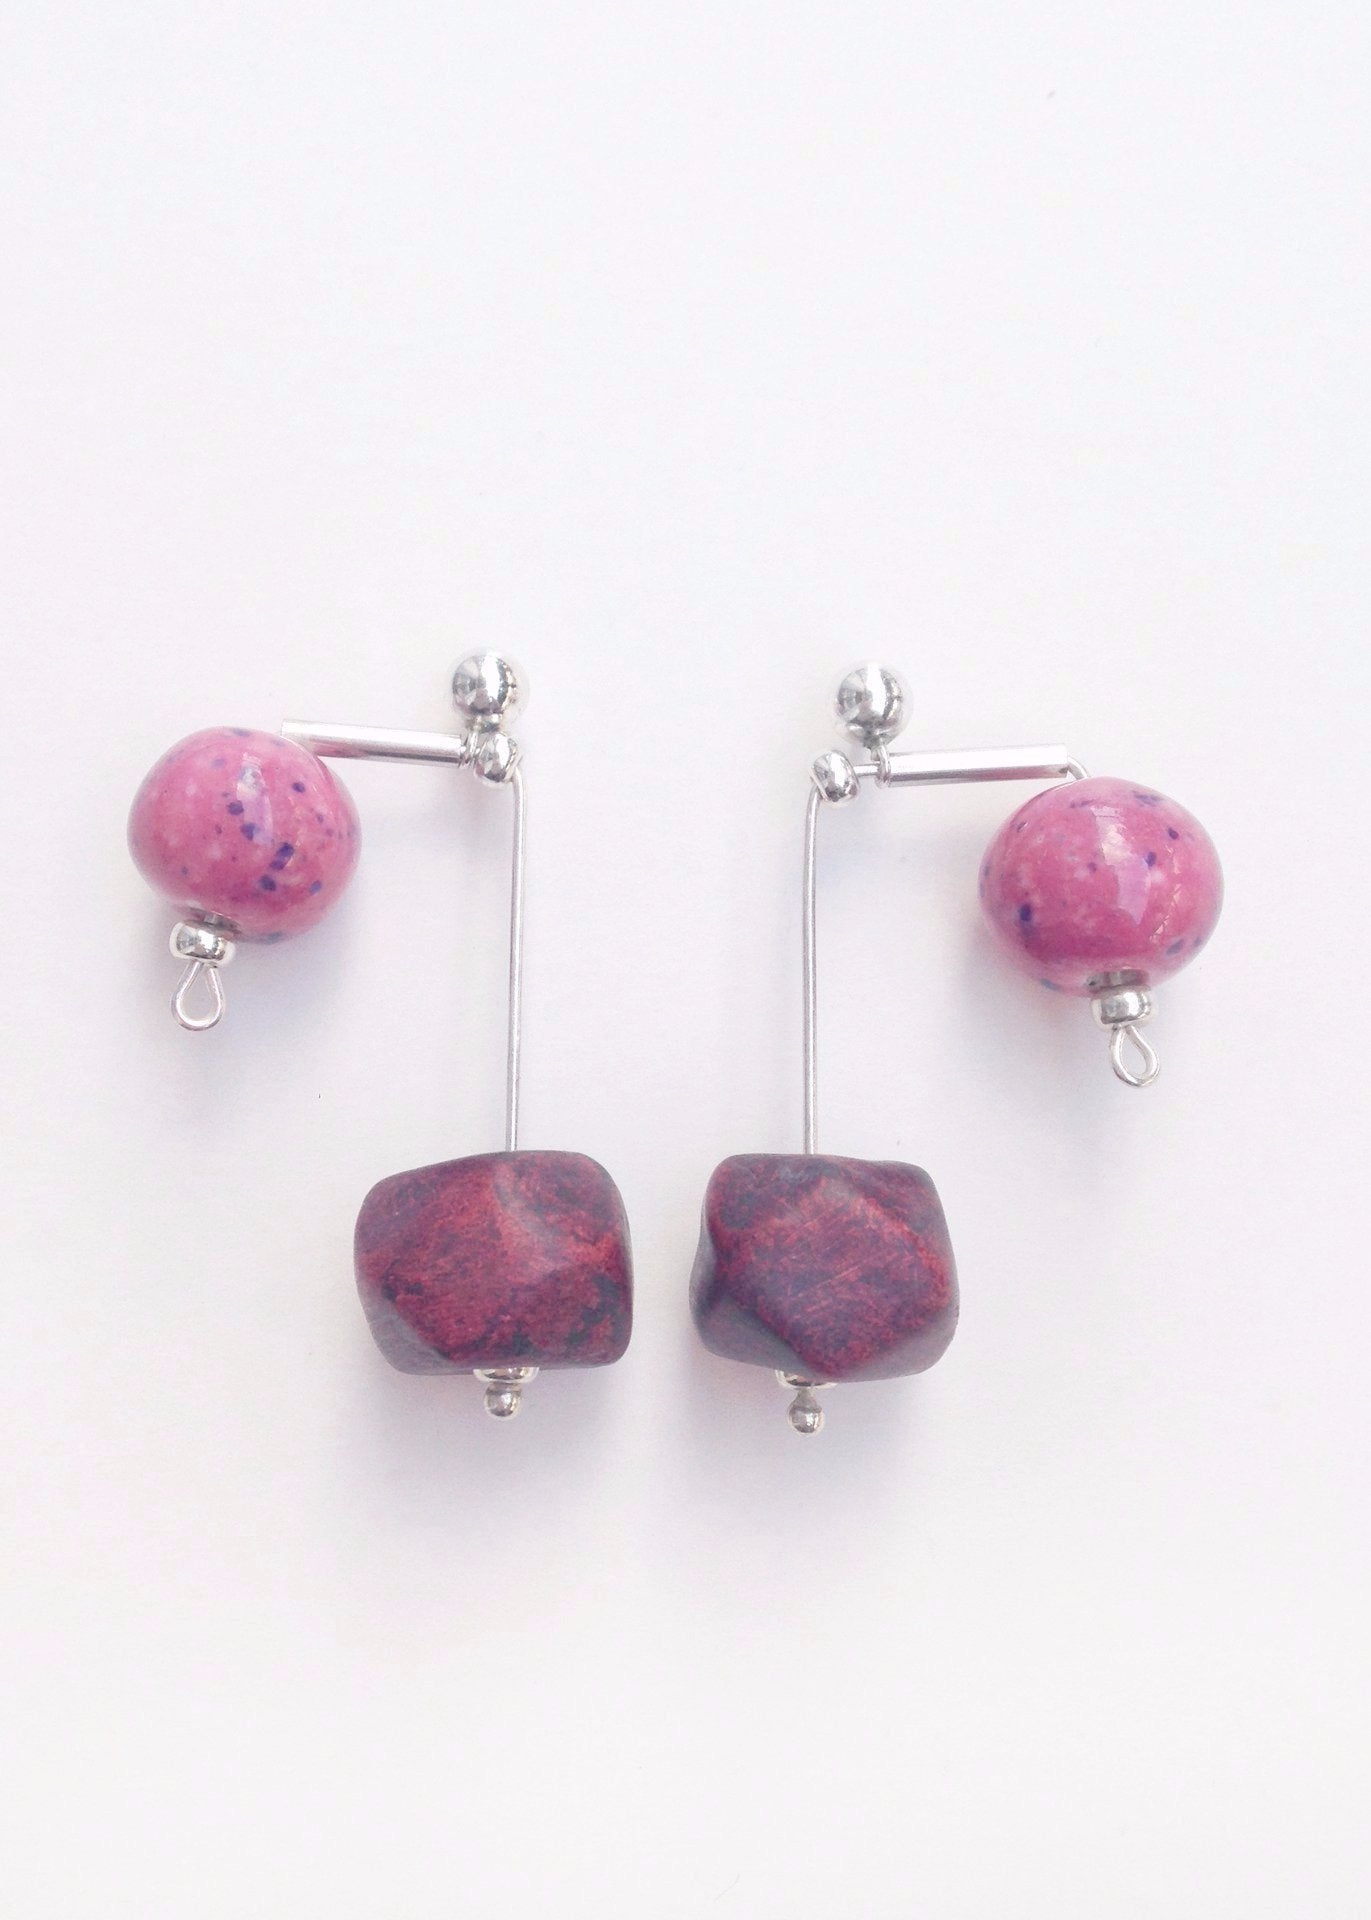 Cora - Ceramic Beads and Silver Earrings